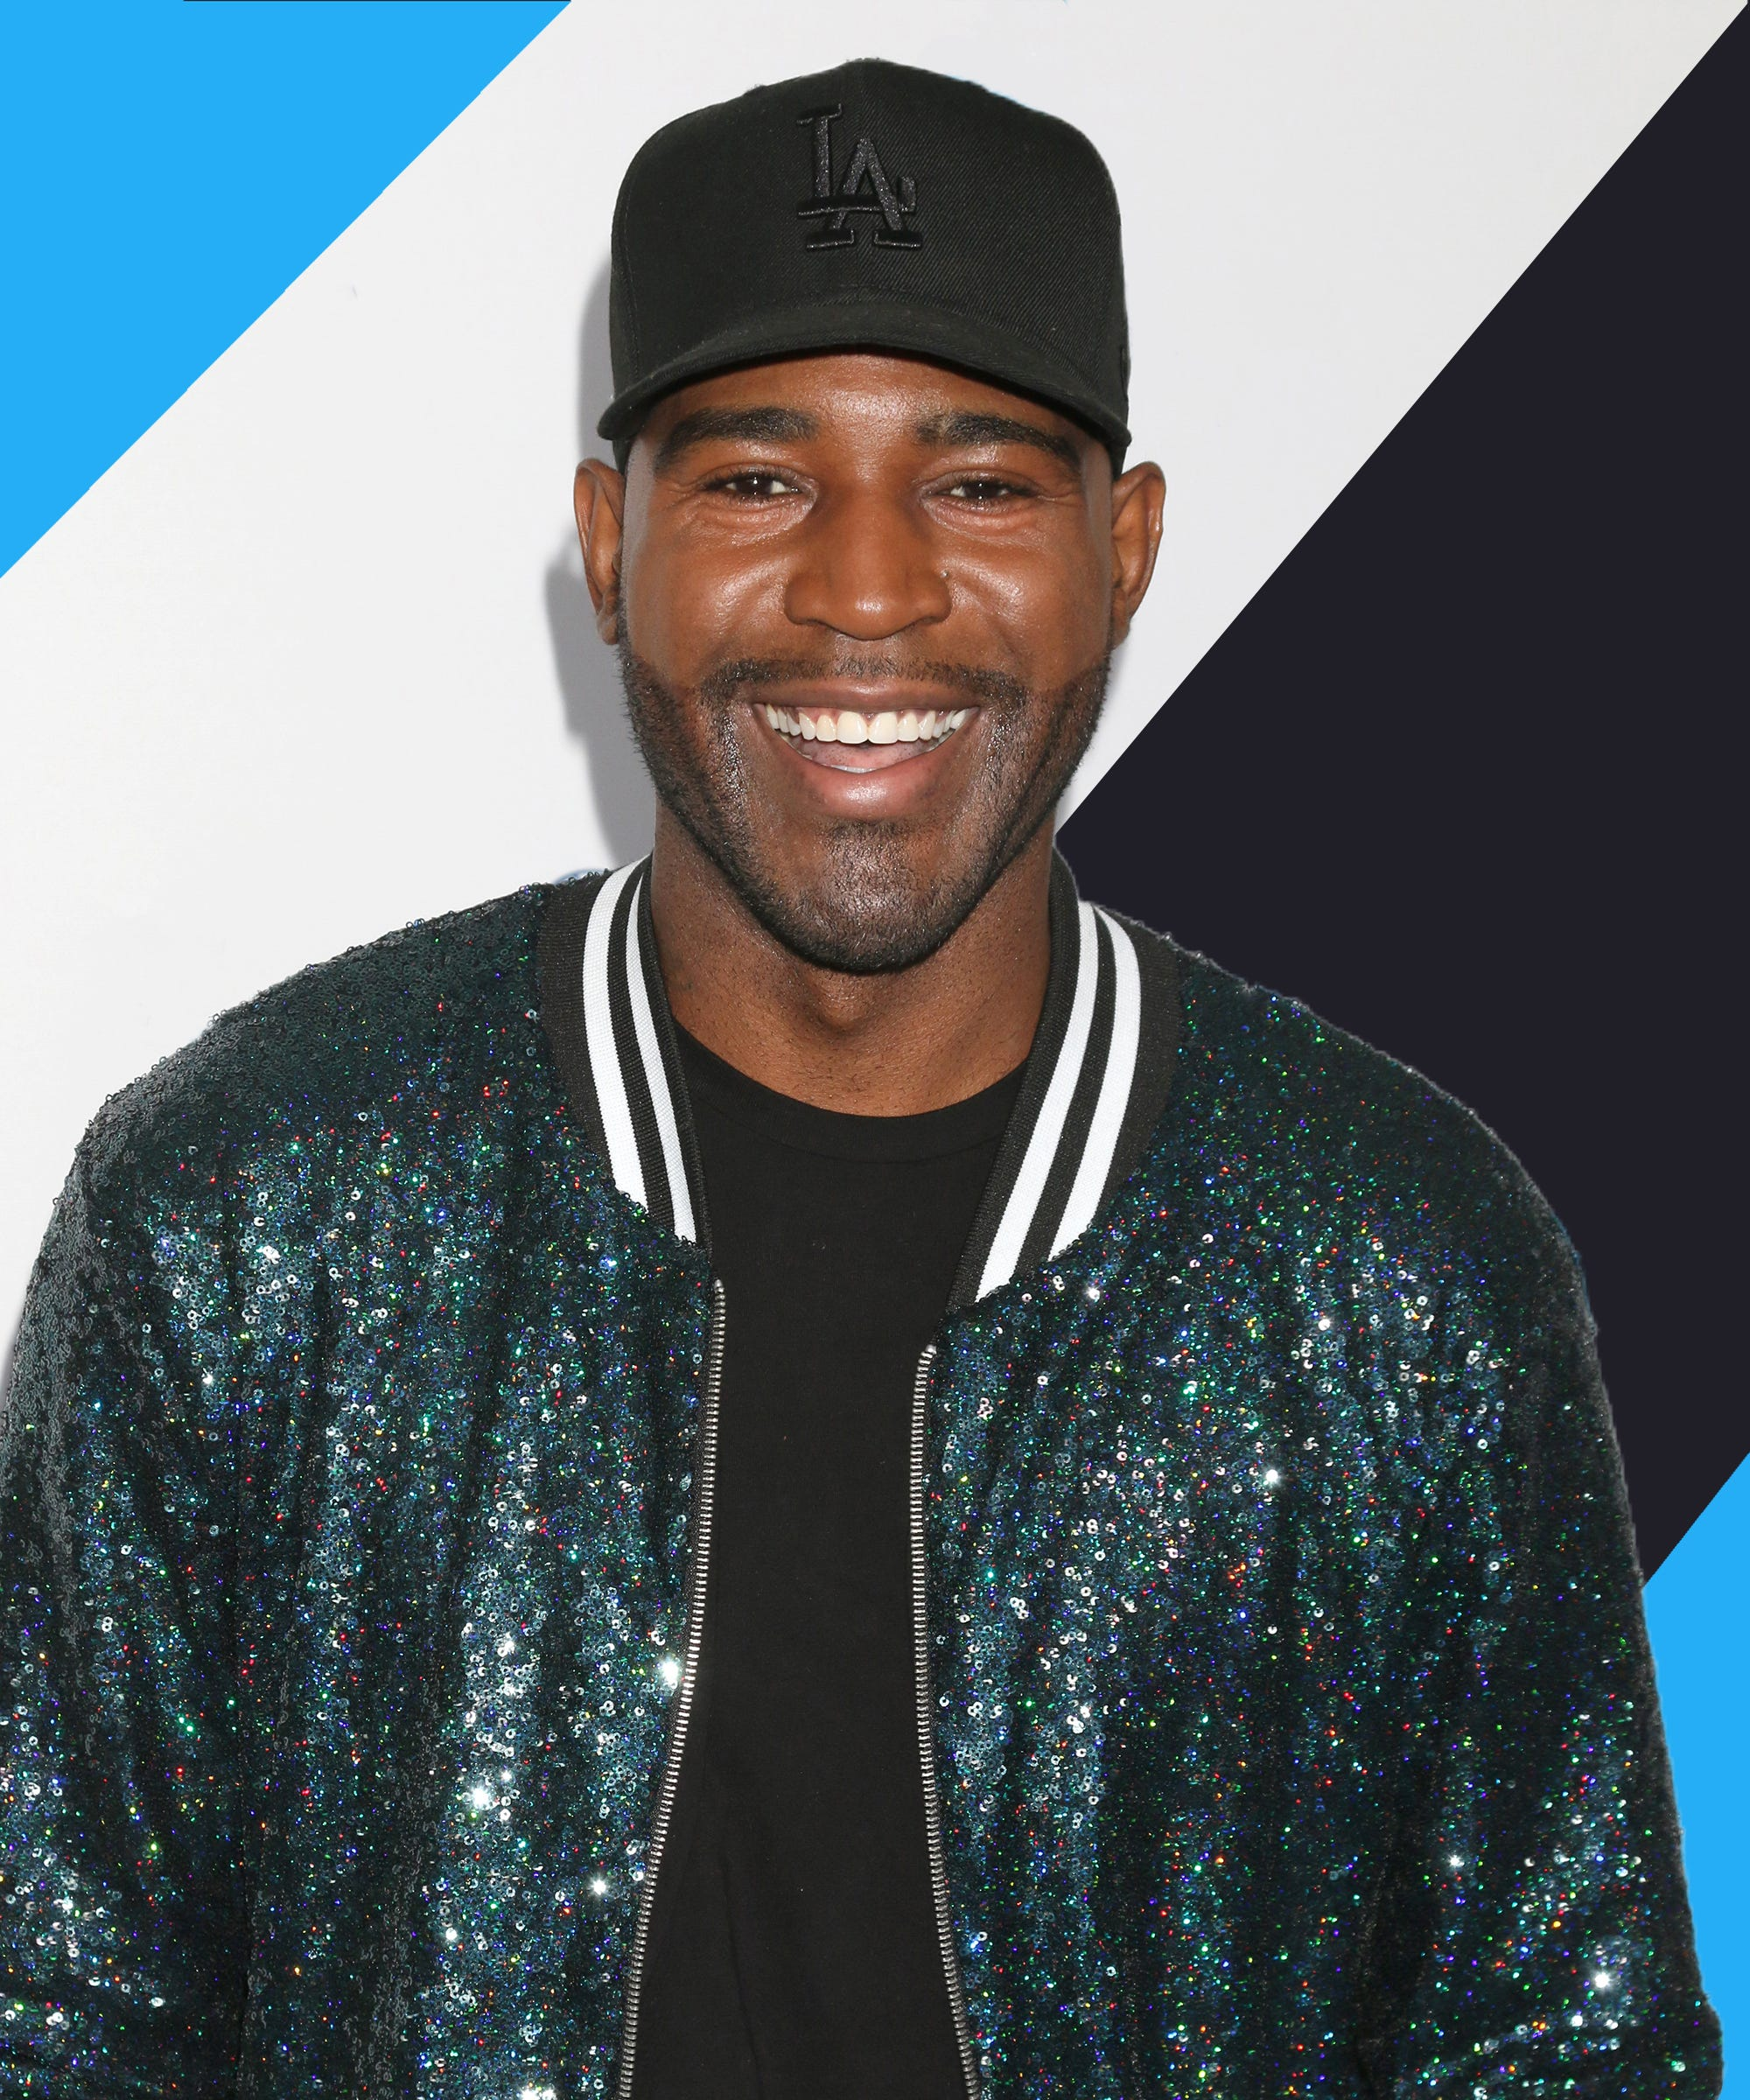 Queer Eye's Karamo Brown Deletes Twitter After Sean Spicer Comment